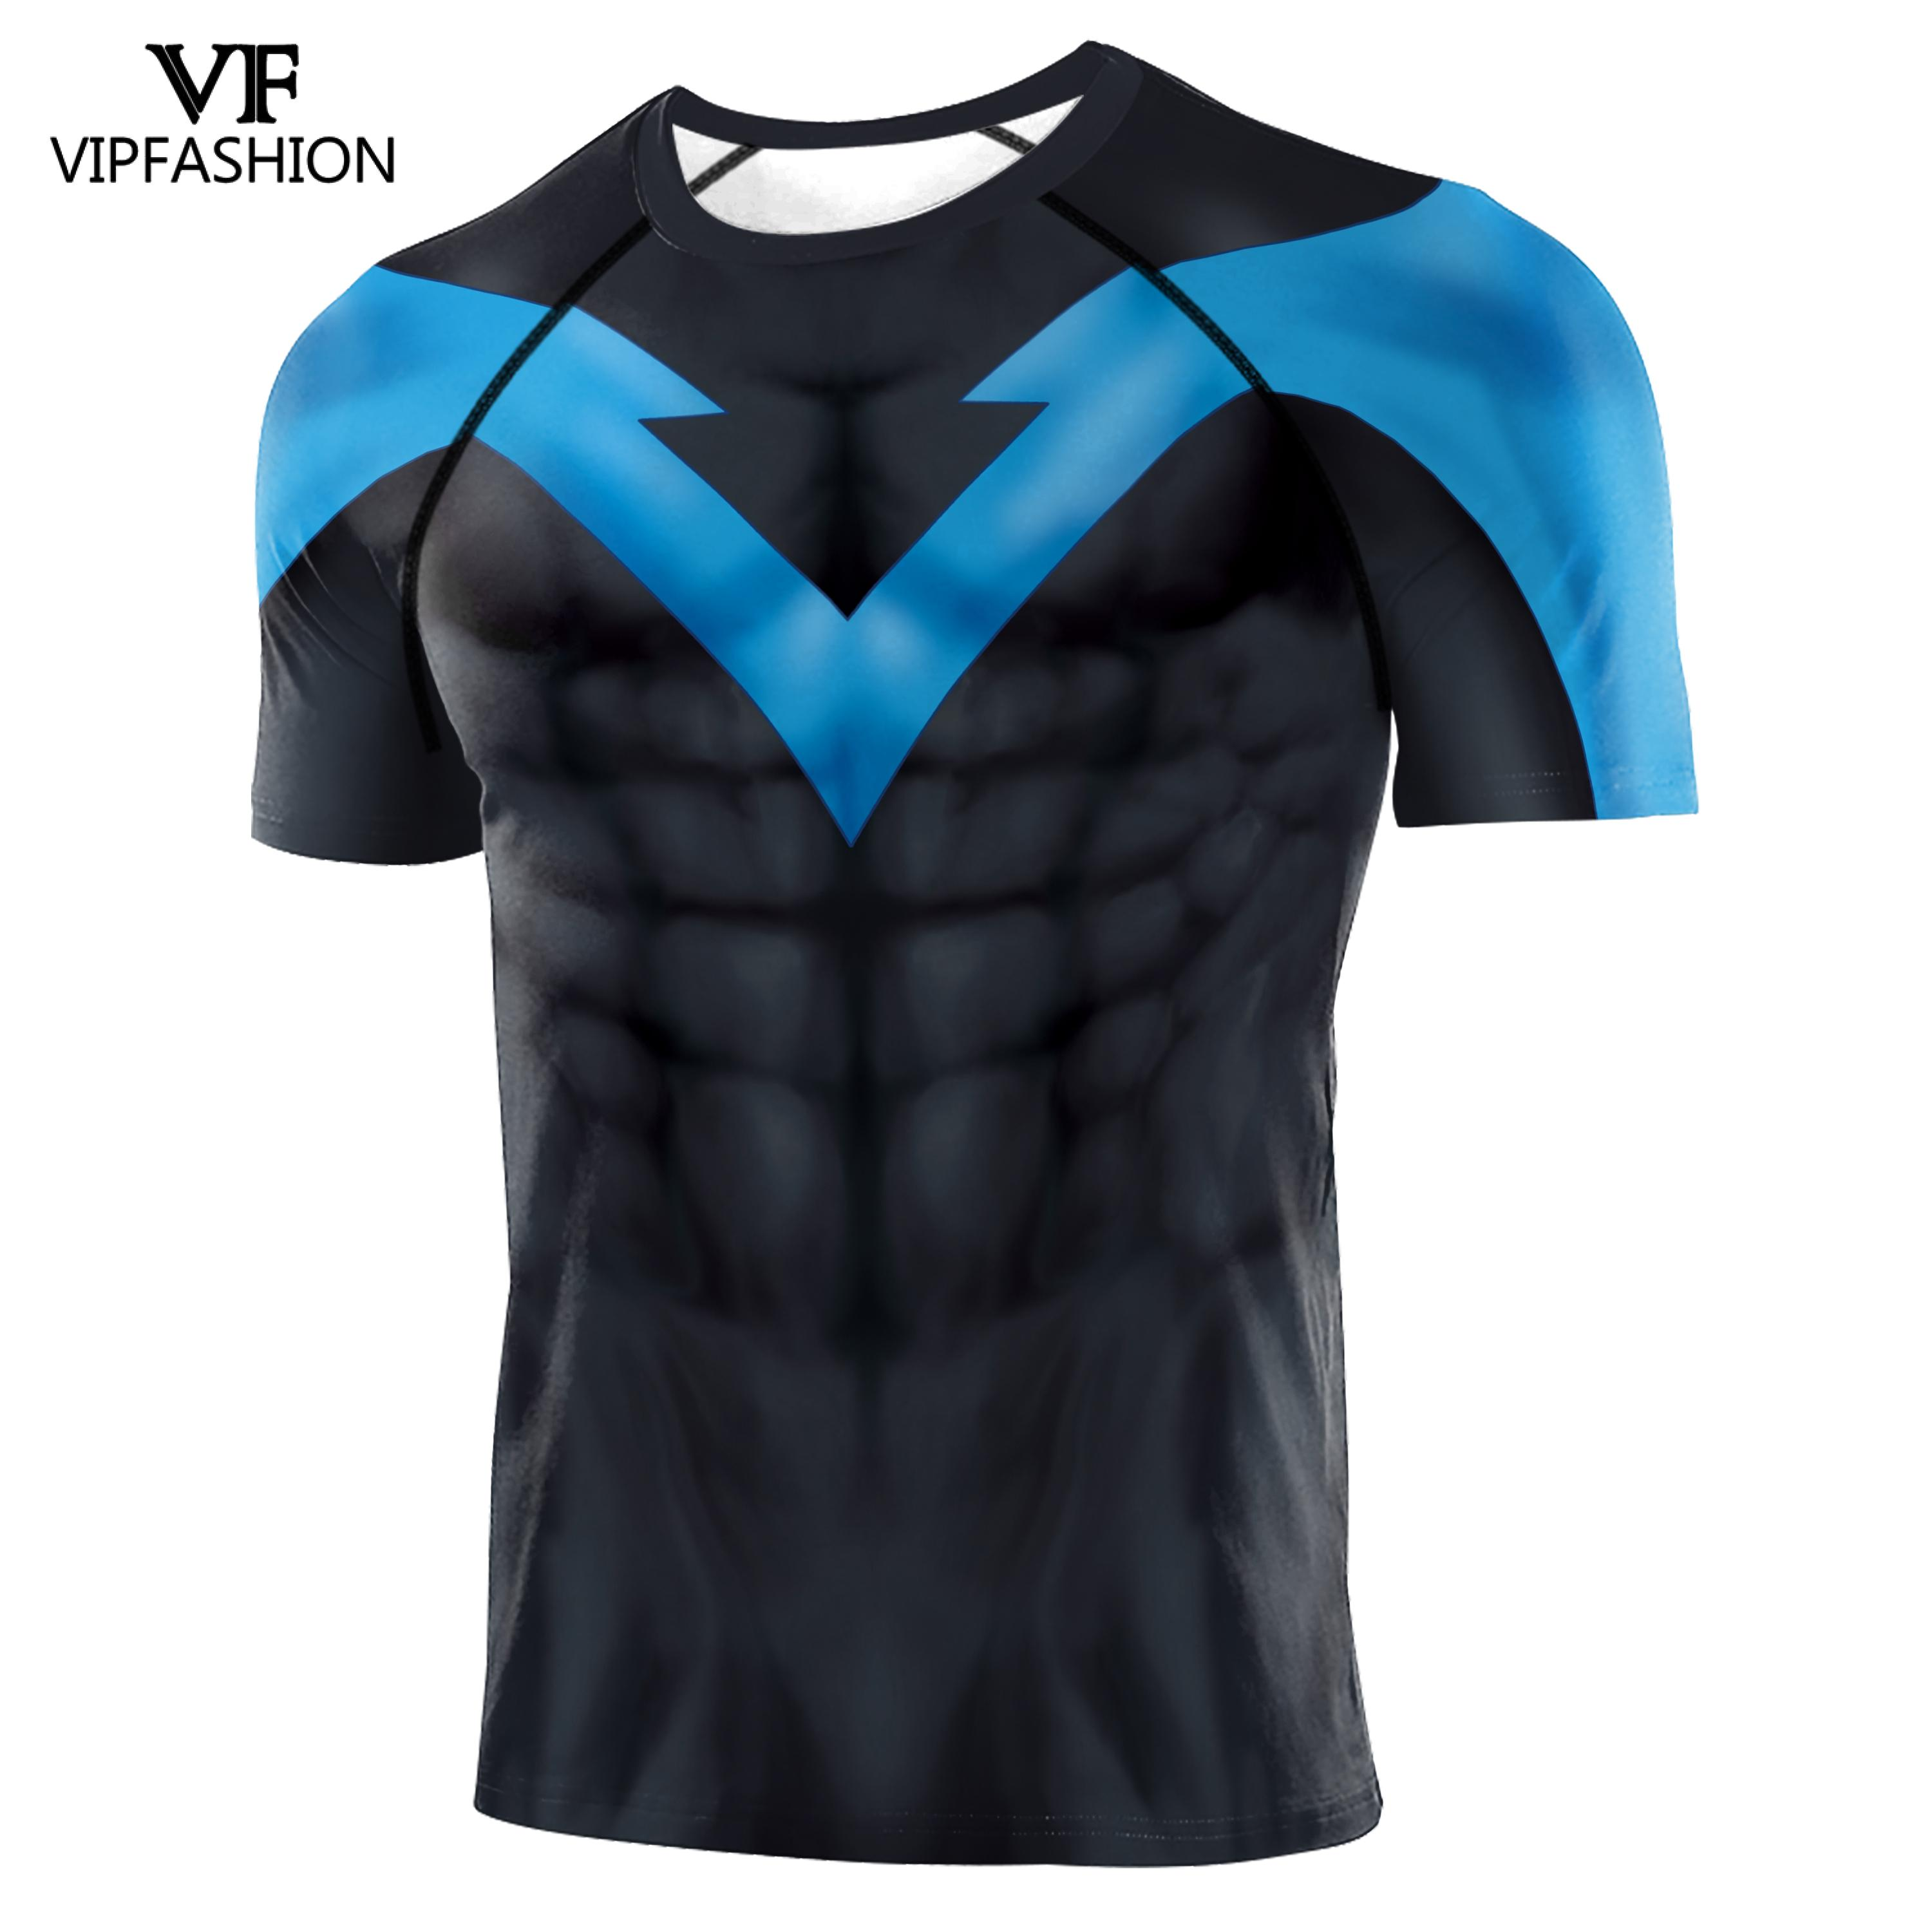 VIP FASHION 2020 3D Printed T-shirts Men Compression Tight T-shirts For Male Nightwing Clothing Avengers Raglan Sleeves